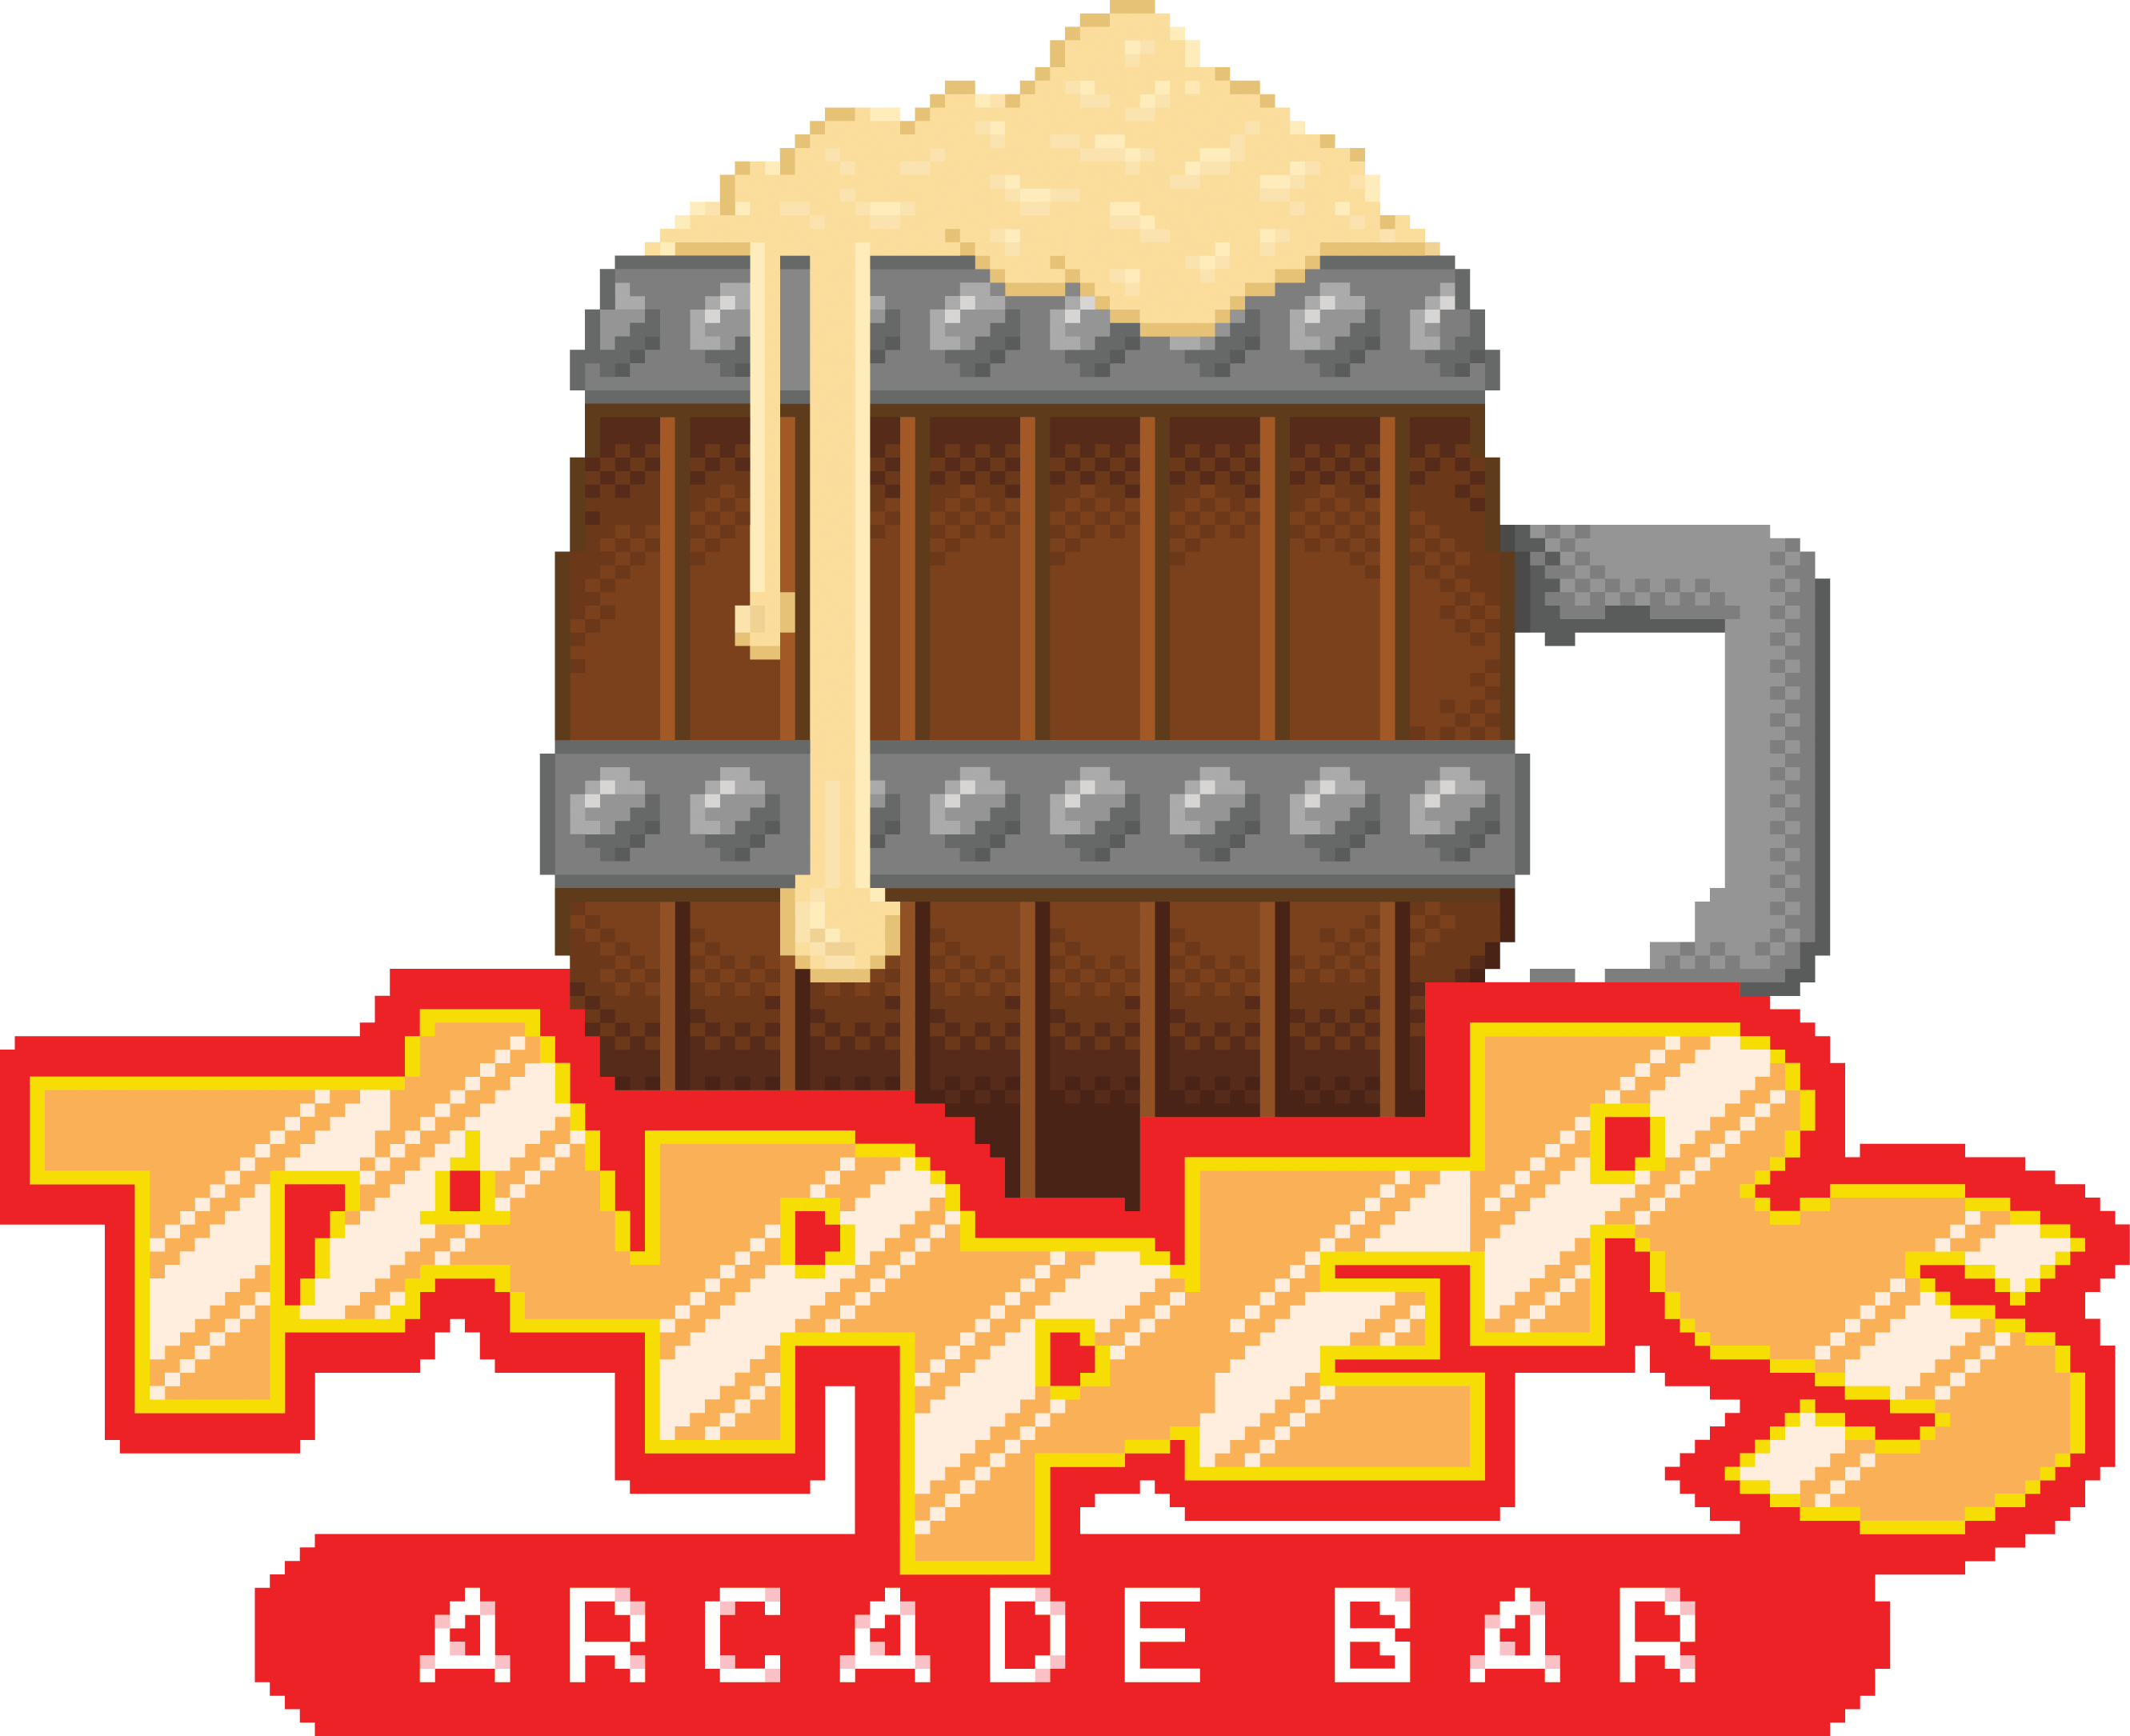 Tappers bar downtown level. Restaurants clipart retro restaurant